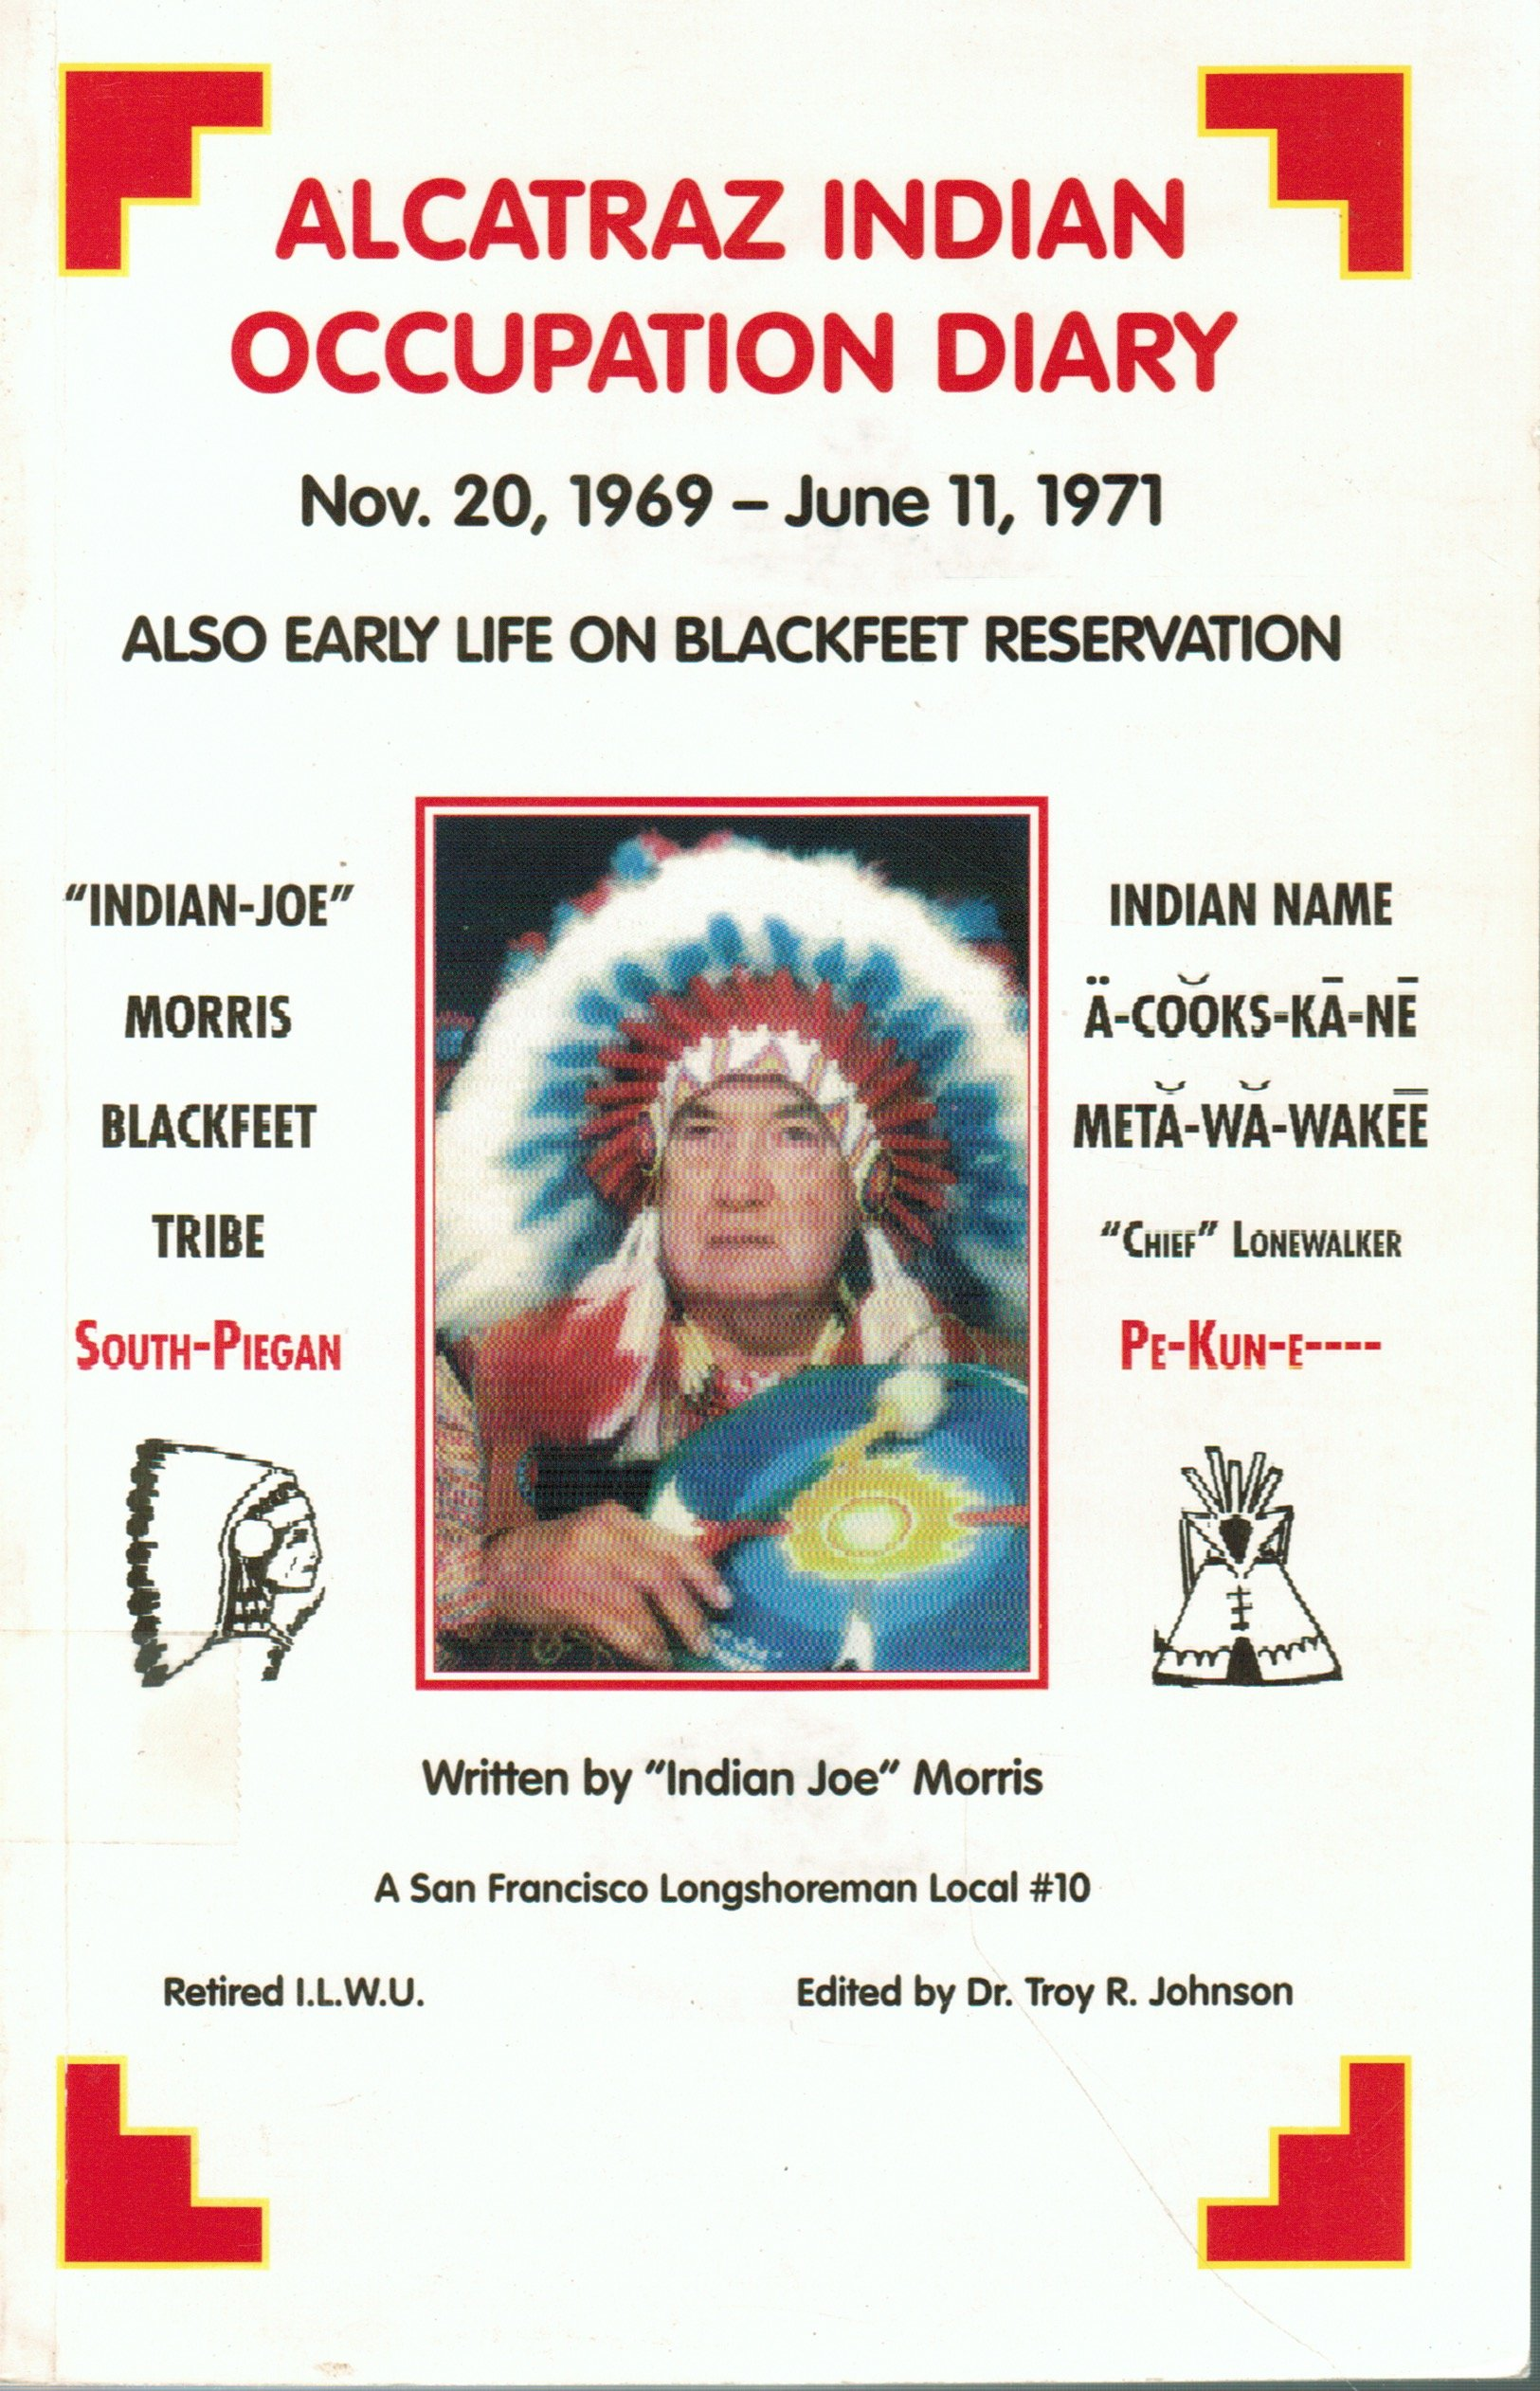 Alcatraz Indian Occupation Diary (November 20, 1969- June 11, 1971) / Early Life on Blackfeet Reservation, 2nd Edition, Indian Joe Morris; Linda C. Morris